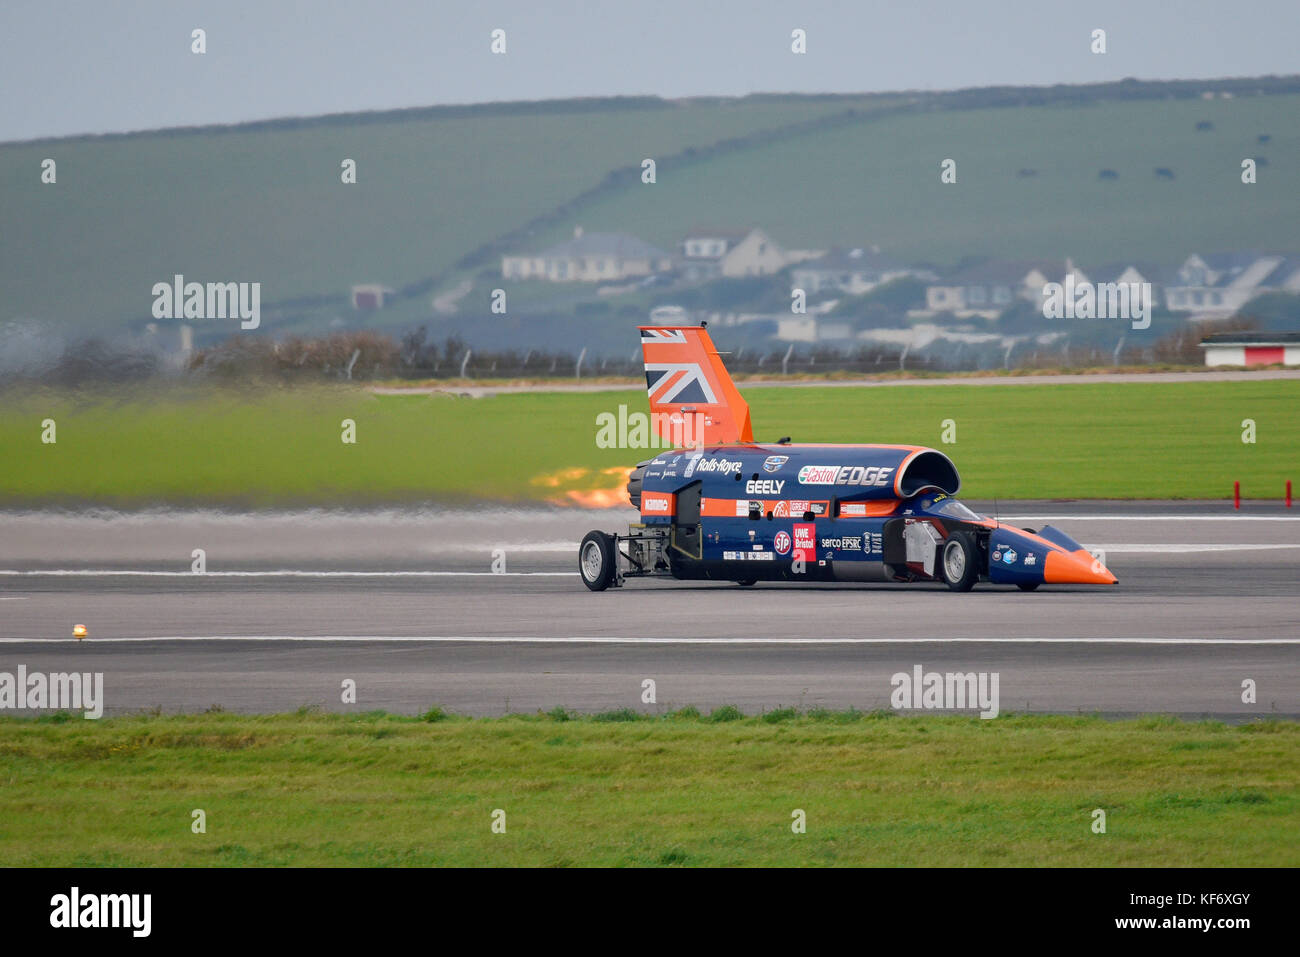 bloodhound-ssc-supersonic-car-at-speed-with-re-heat-afterburner-engaged-KF6XGY.jpg